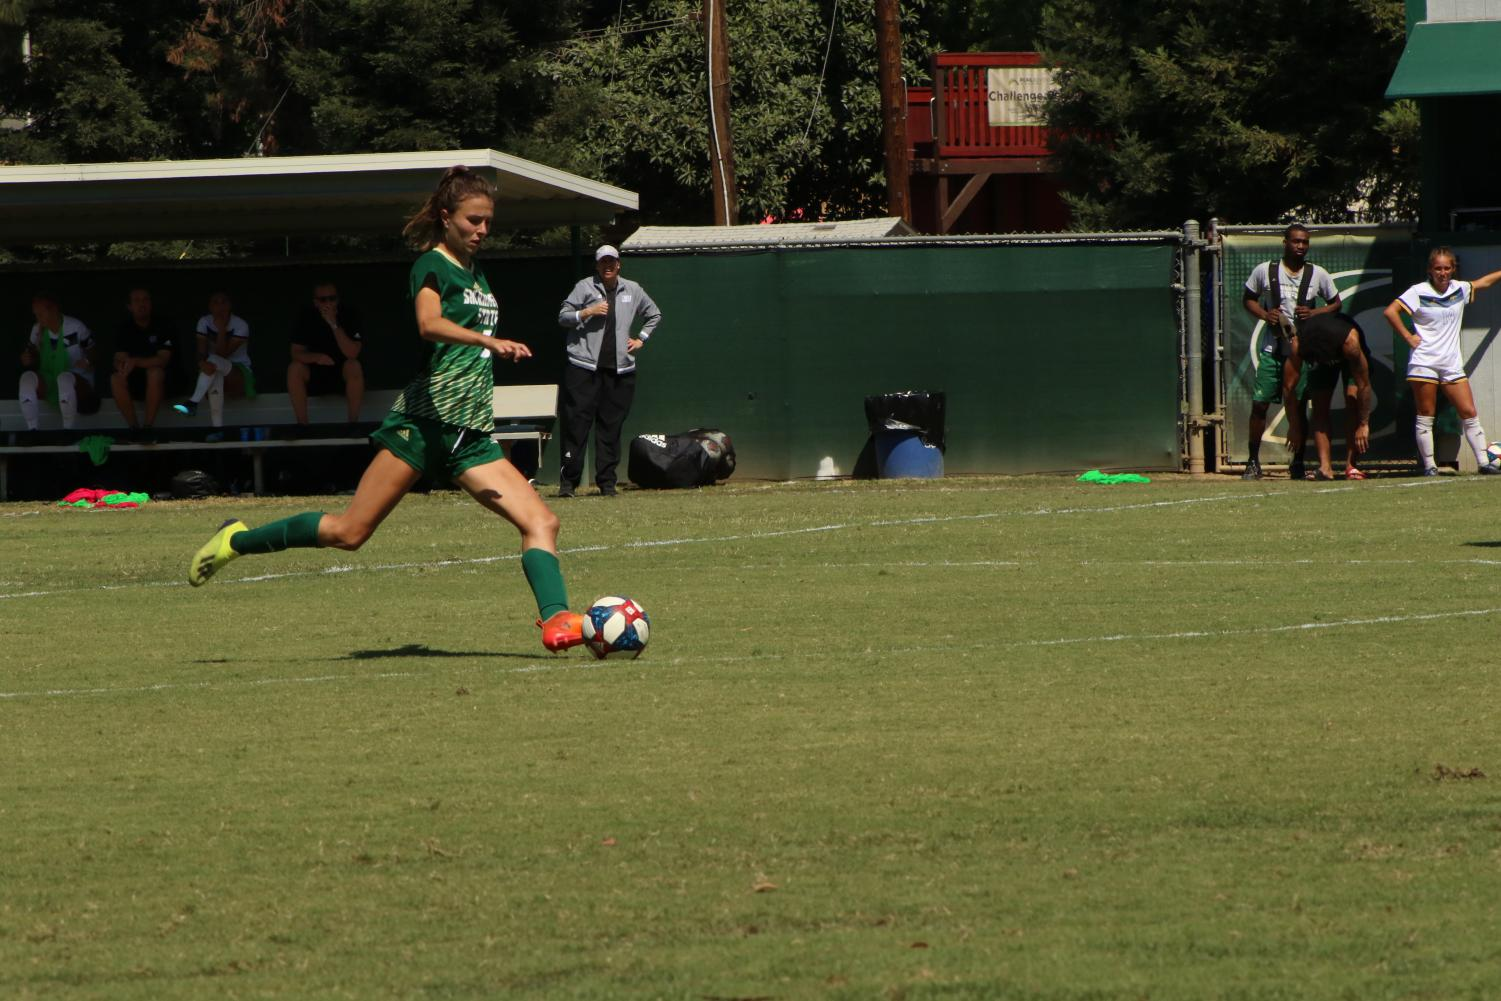 Sac+State+junior+defender+Aubrey+Goodwill+sets+up+for+a+free+kick+from+about+40+yards+out+against+Cal+Baptist+on+Sunday%2C+Sept.+8+at+Hornet+Field.+On+this+kick%2C+Goodwill+assisted+junior+forward+Kylee+Kim-Bustillos+who+scored+to+tie+the+game+at+two.